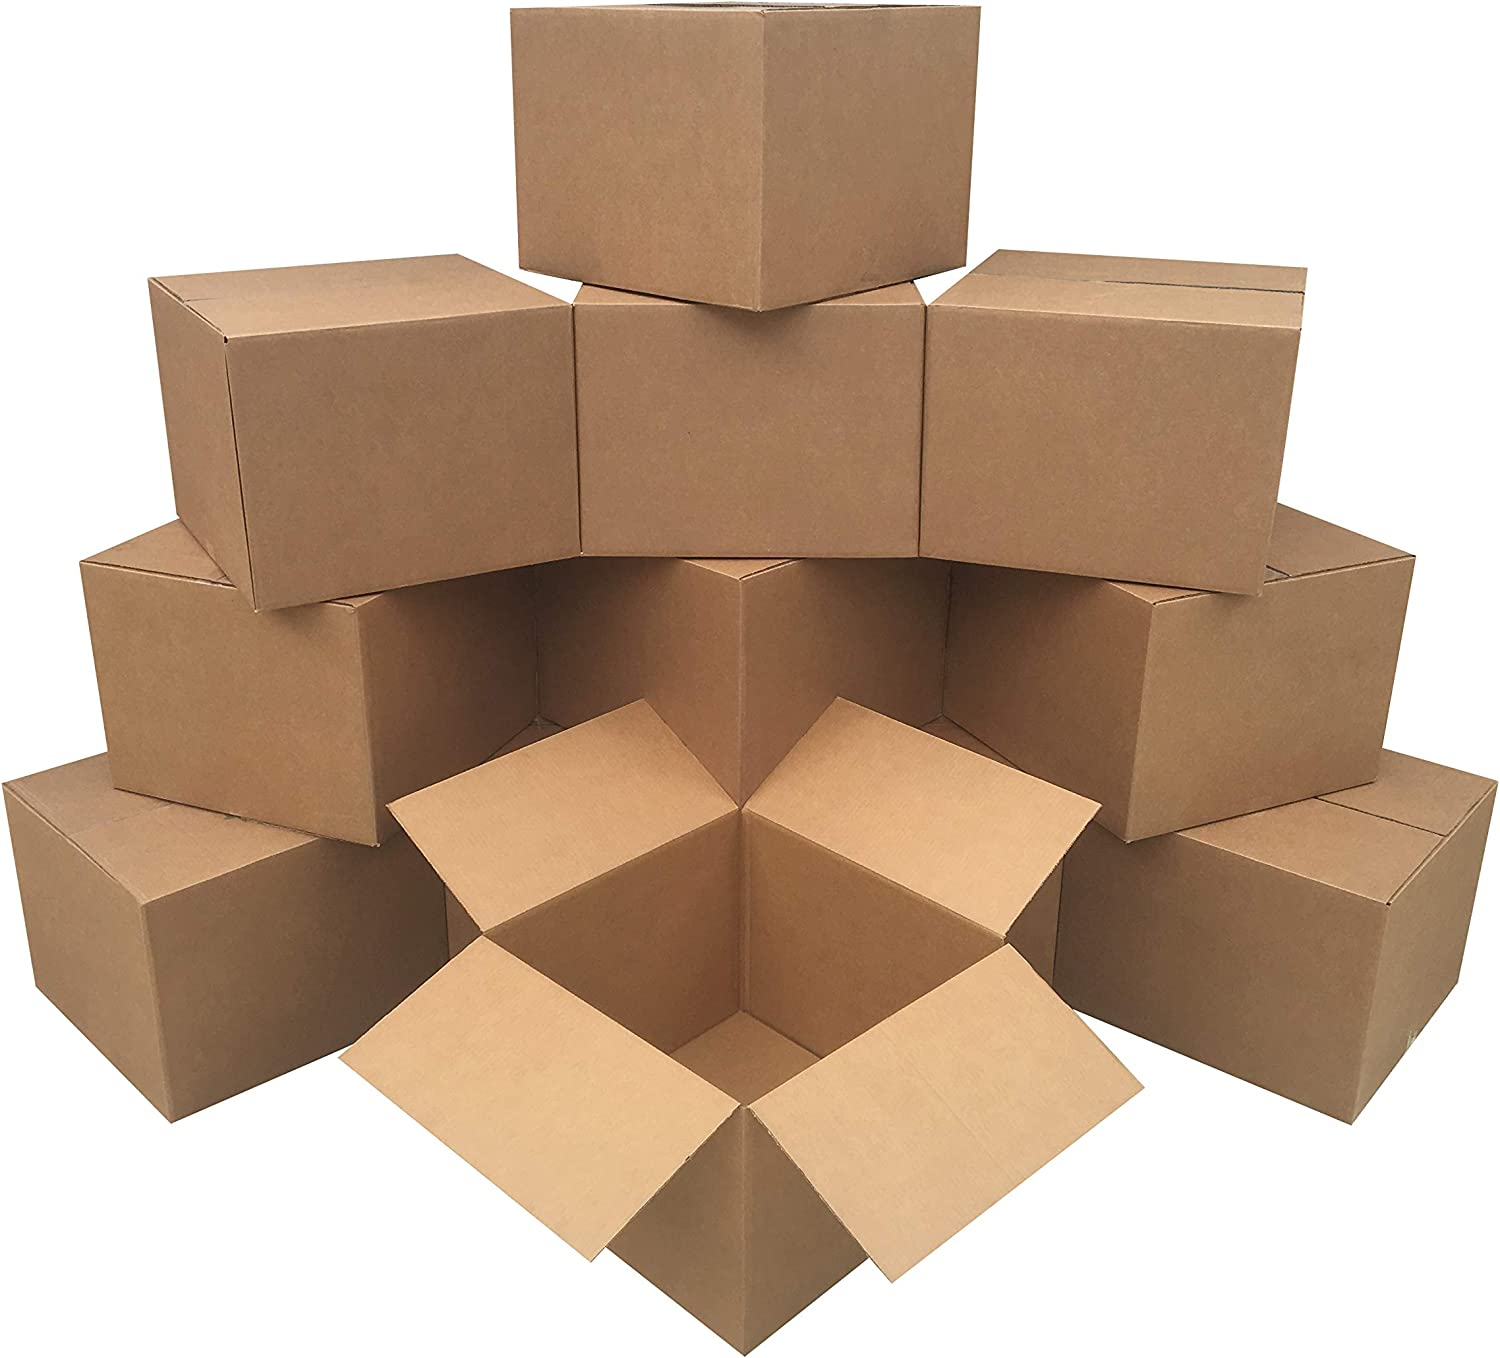 UBOXES Moving Boxes, Large 20 x 20 x 15 Inches (Bundle of 12) Boxes for Moving (BOXBUNDLAR12) : Box Mailers : Office Products